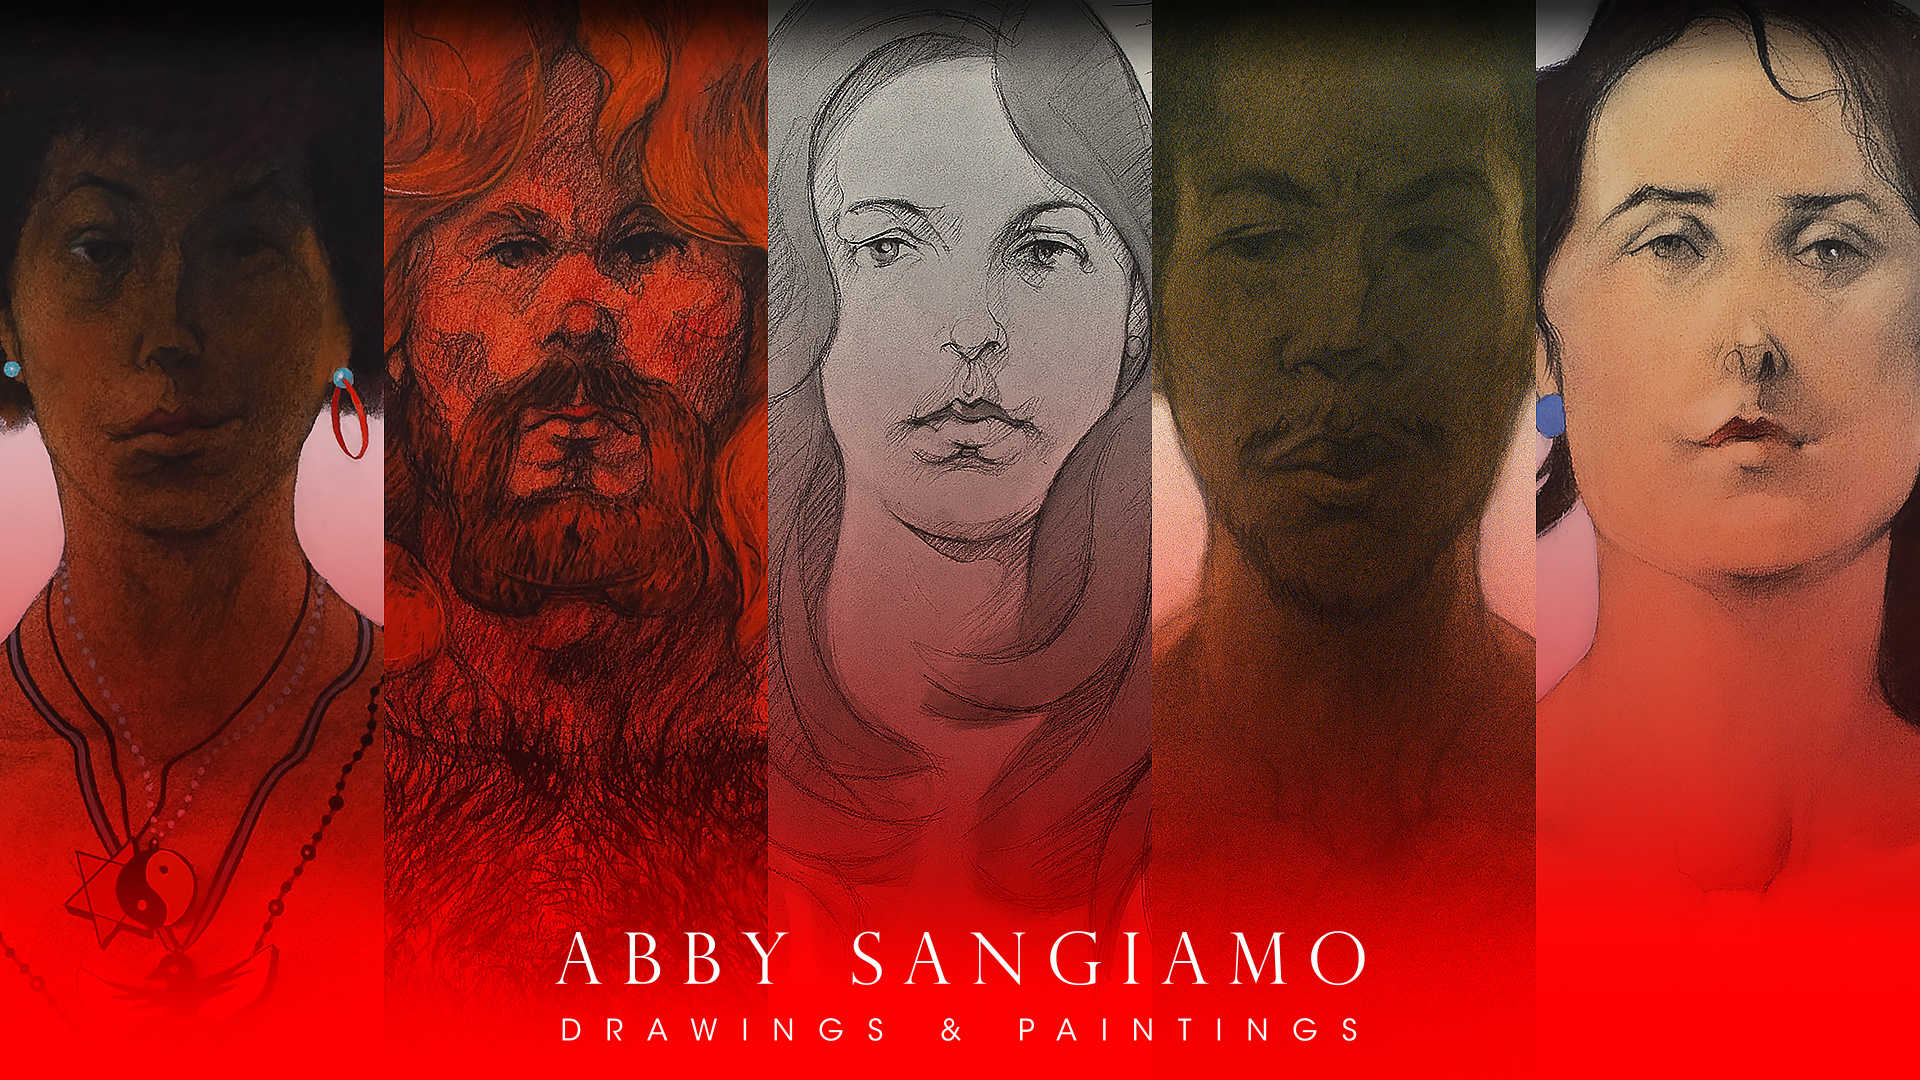 Abby Sangiamo, Drawings & Paintings hero image.